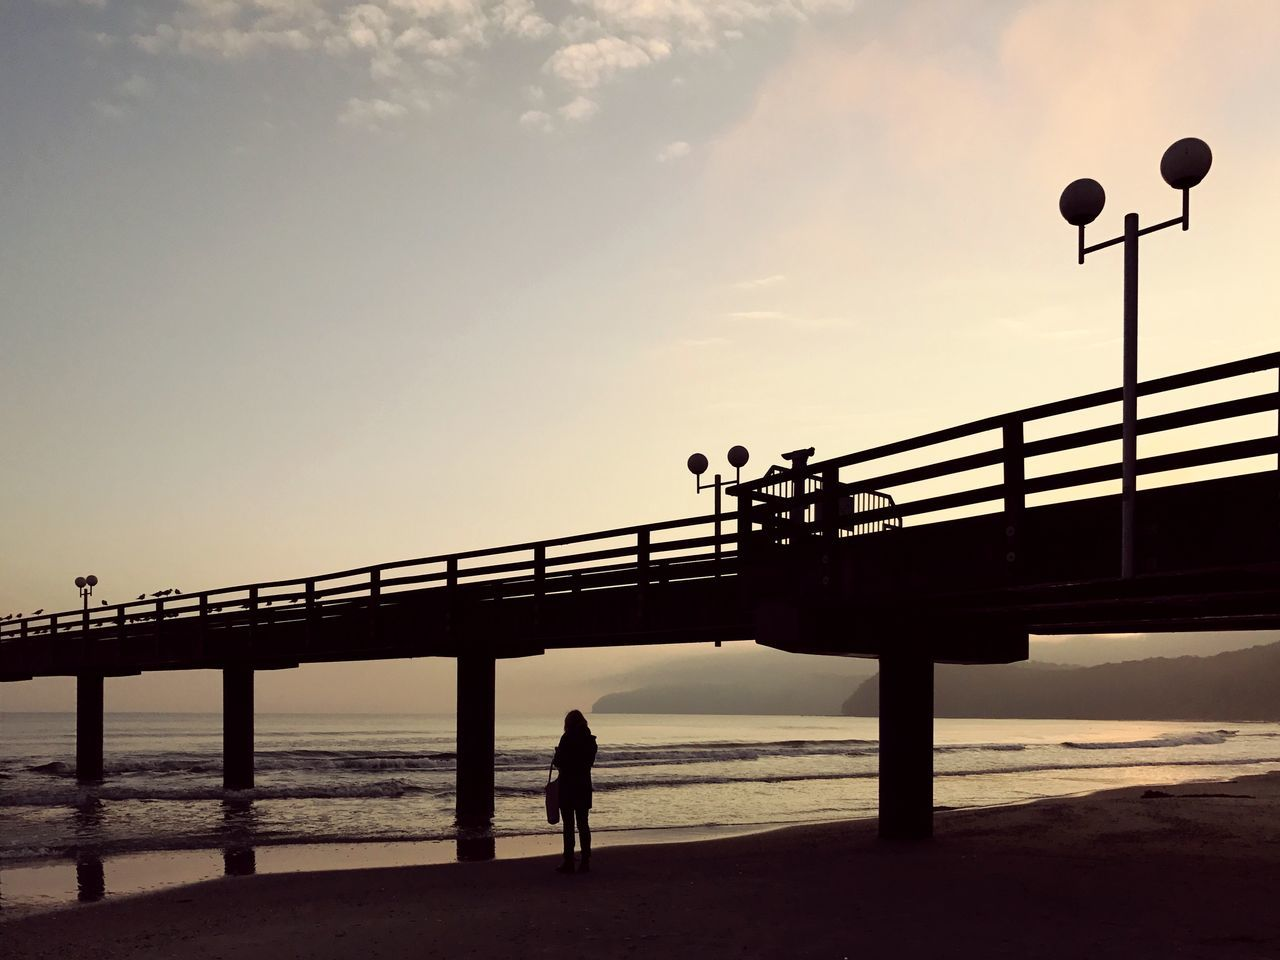 My Year My View Sky Railing Bridge - Man Made Structure Sea Connection Outdoors Sunset Nature Real People Full Length Men Day Beauty In Nature One Person Water People Silhouette Beach Ostsee Ostseebad Binz EyeEm Best Shots EyeEm Nature Lover Eyeem Market Miles Away